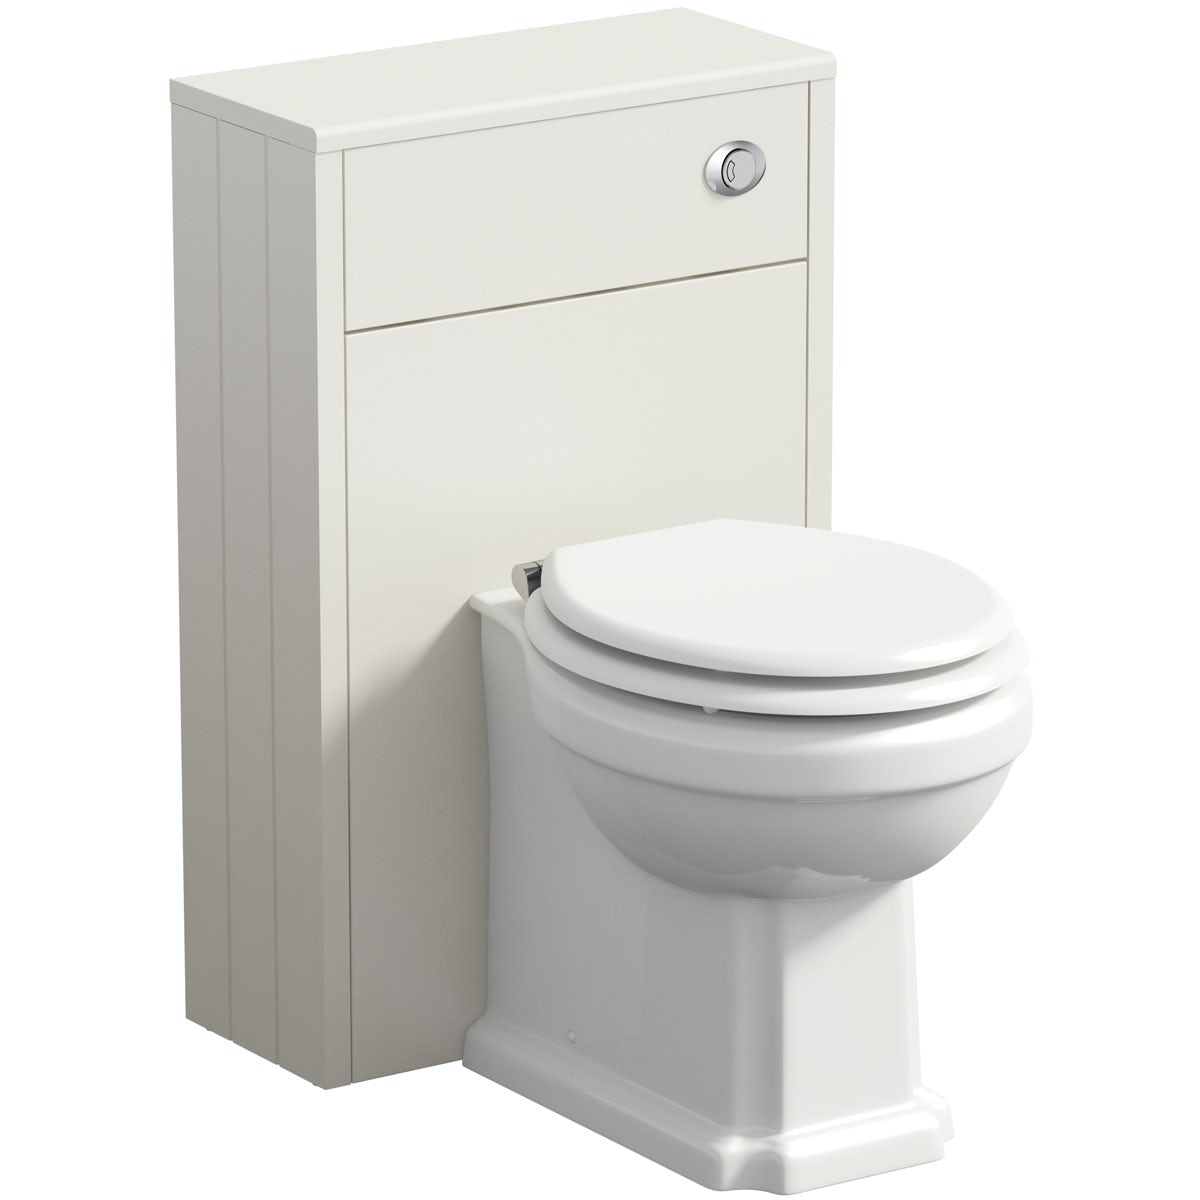 Traditional 500mm Bathroom Toilet BTW Back To WaIl Ivory Furniture Unit Pan Seat